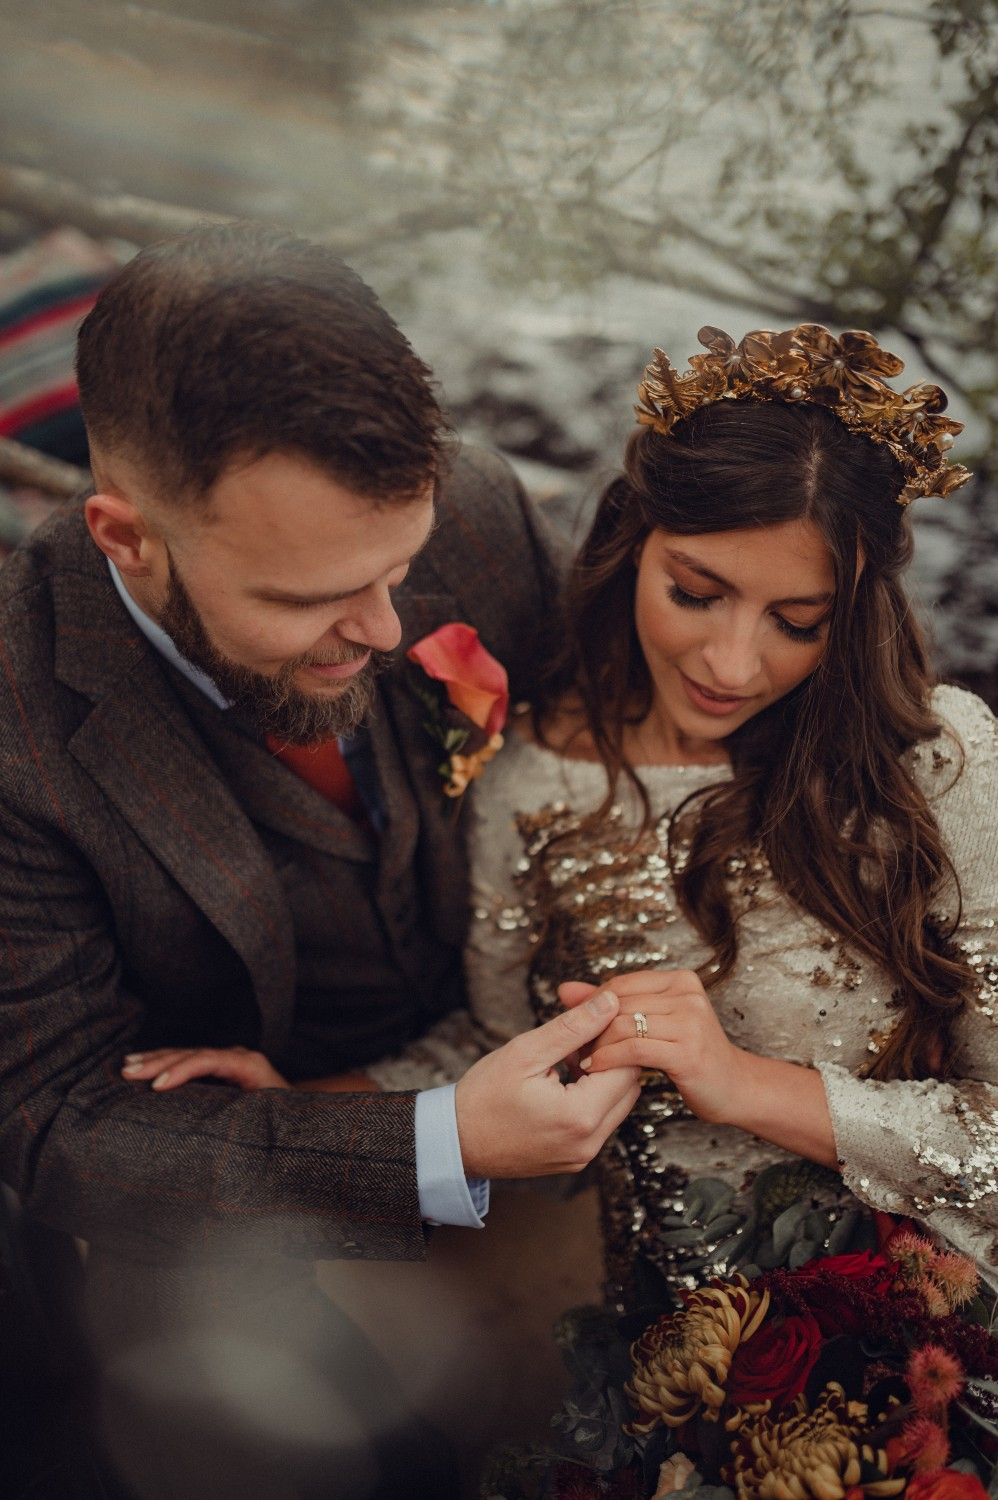 The married couple admire her new wedding ring in the Highlands of Scotland